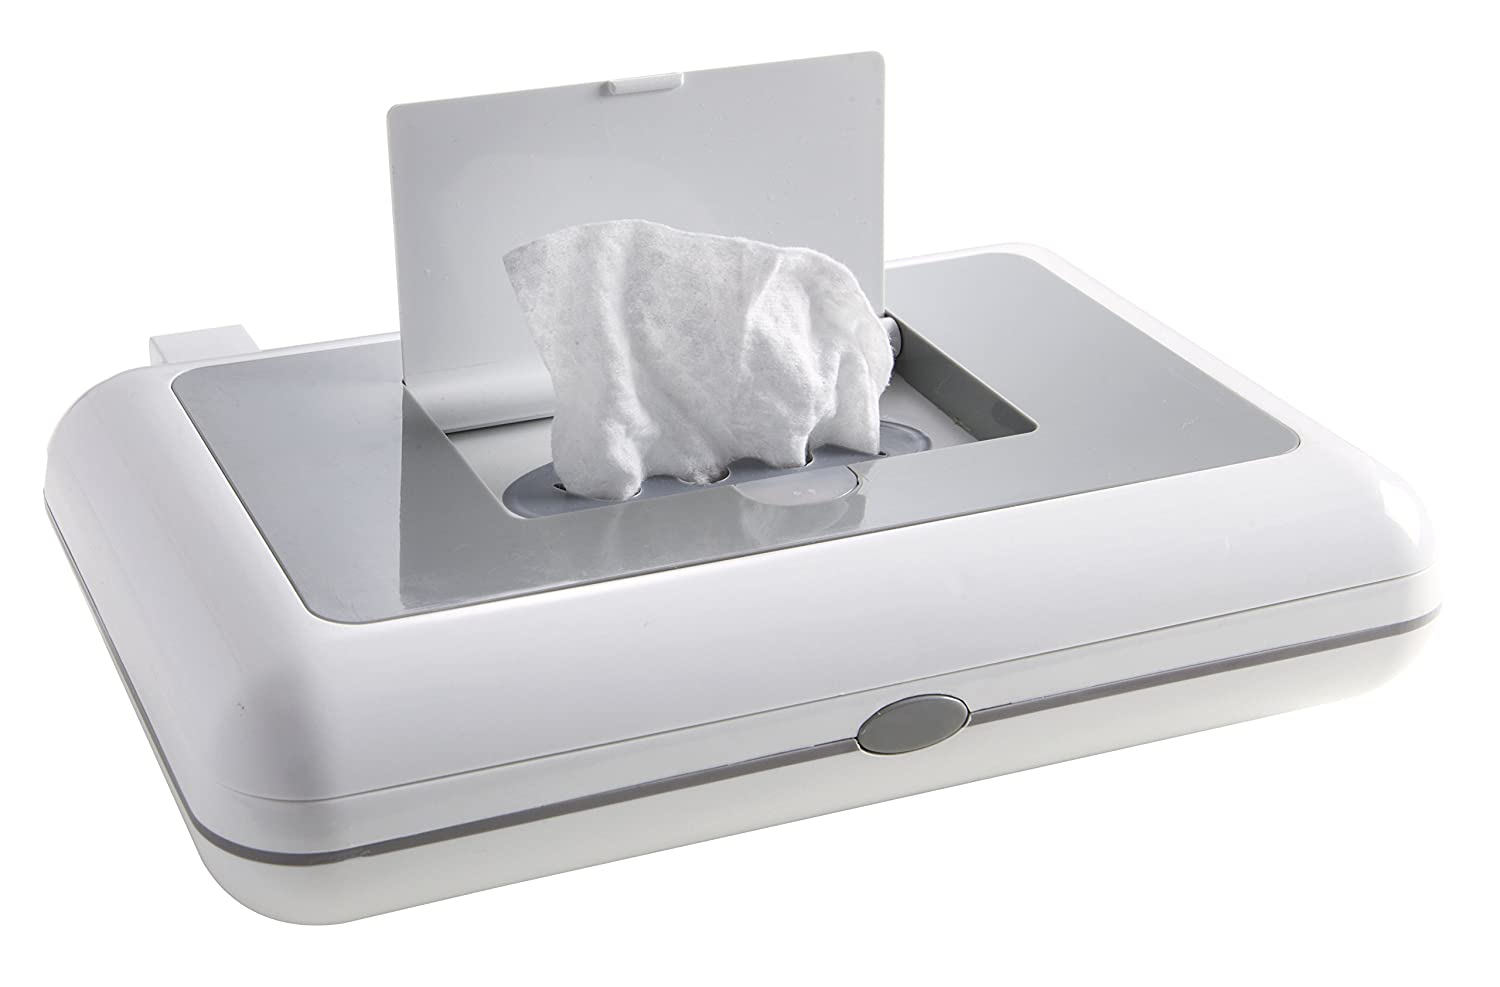 prince lionheart wipes warmer instructions 9002